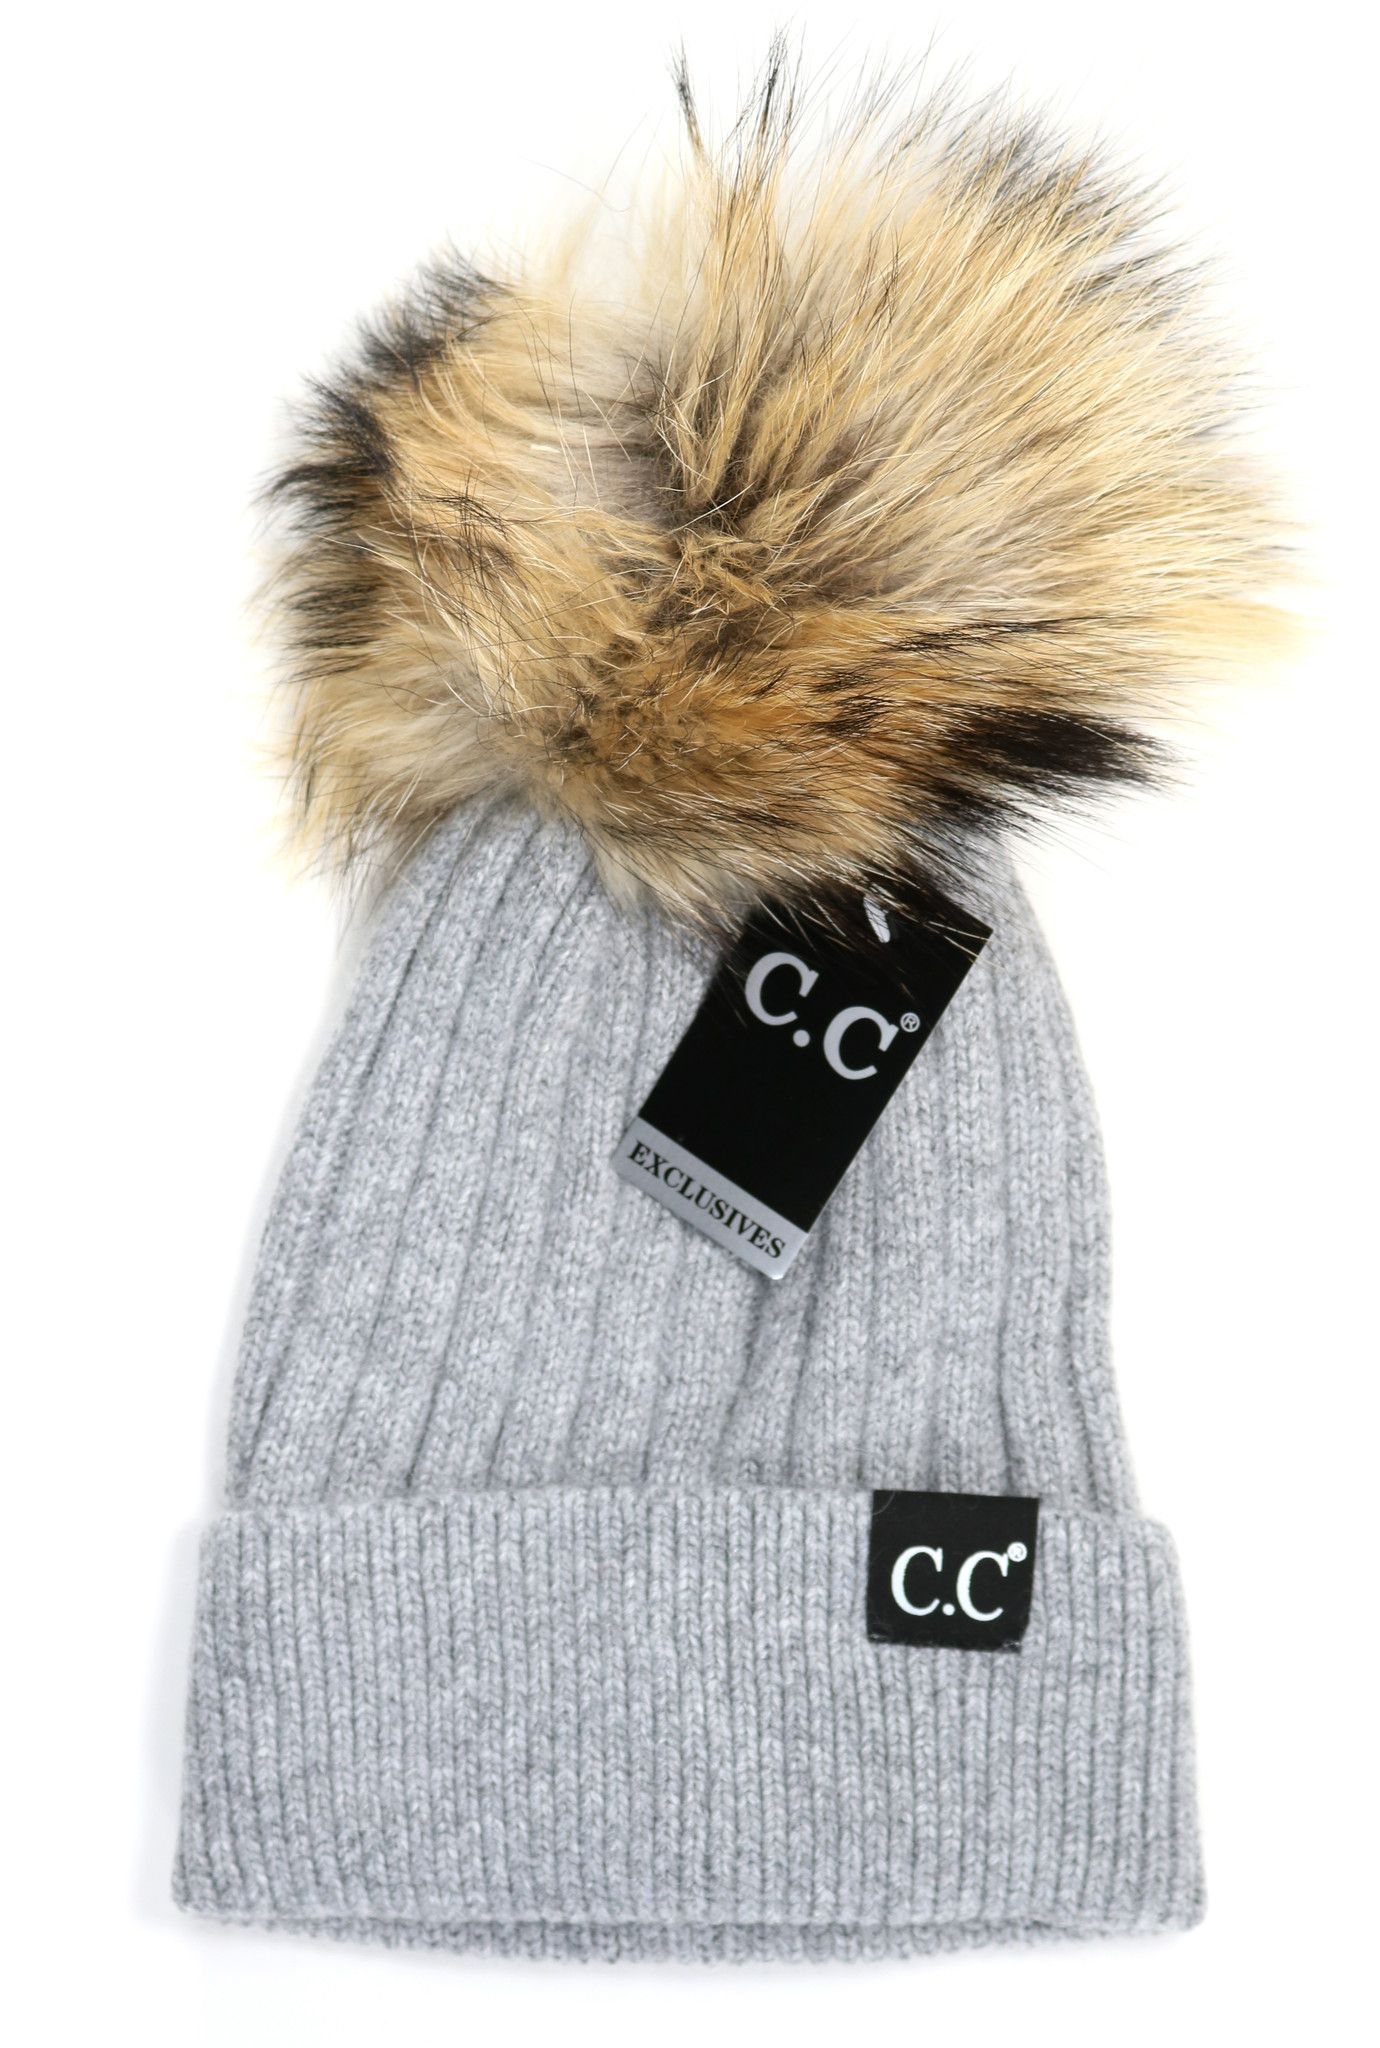 CC Exclusive - Black Label Special Edition Solid Ribbed Knit Beanie ... 11fa2e29a76